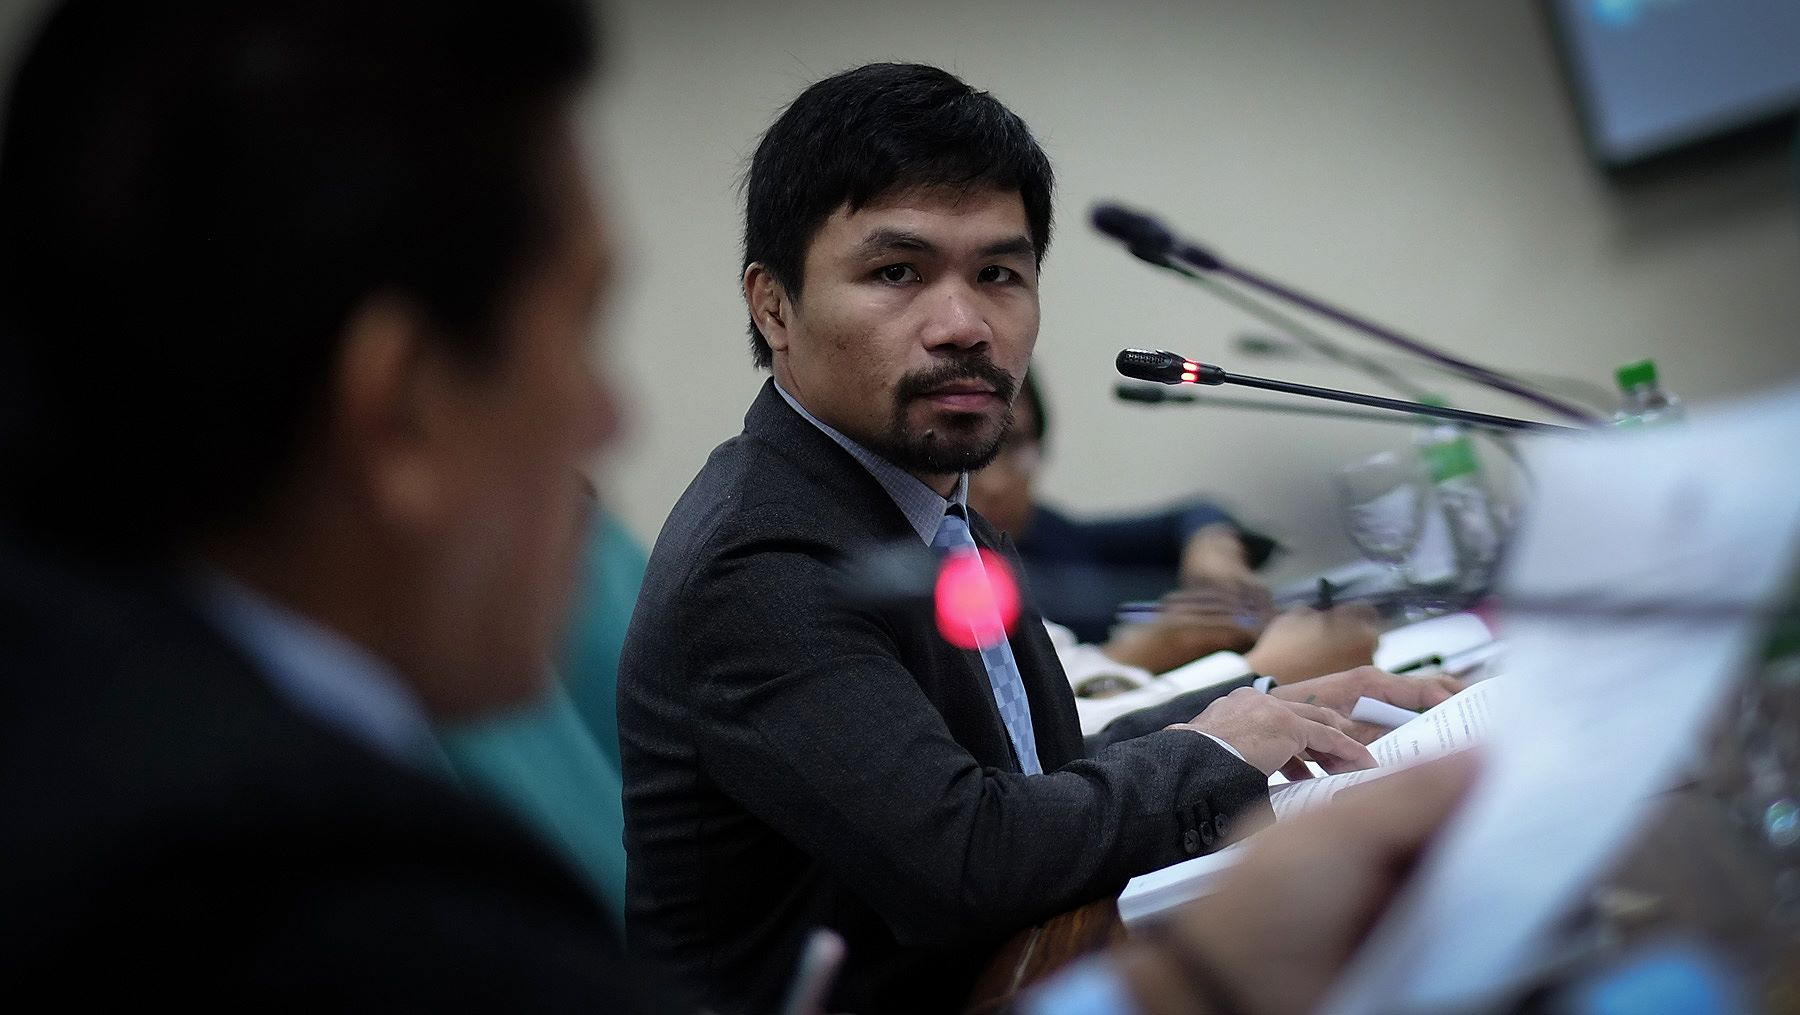 If Manny Pacquiao Is Our Jar Jar Binks, What Should Happen To Him Next?